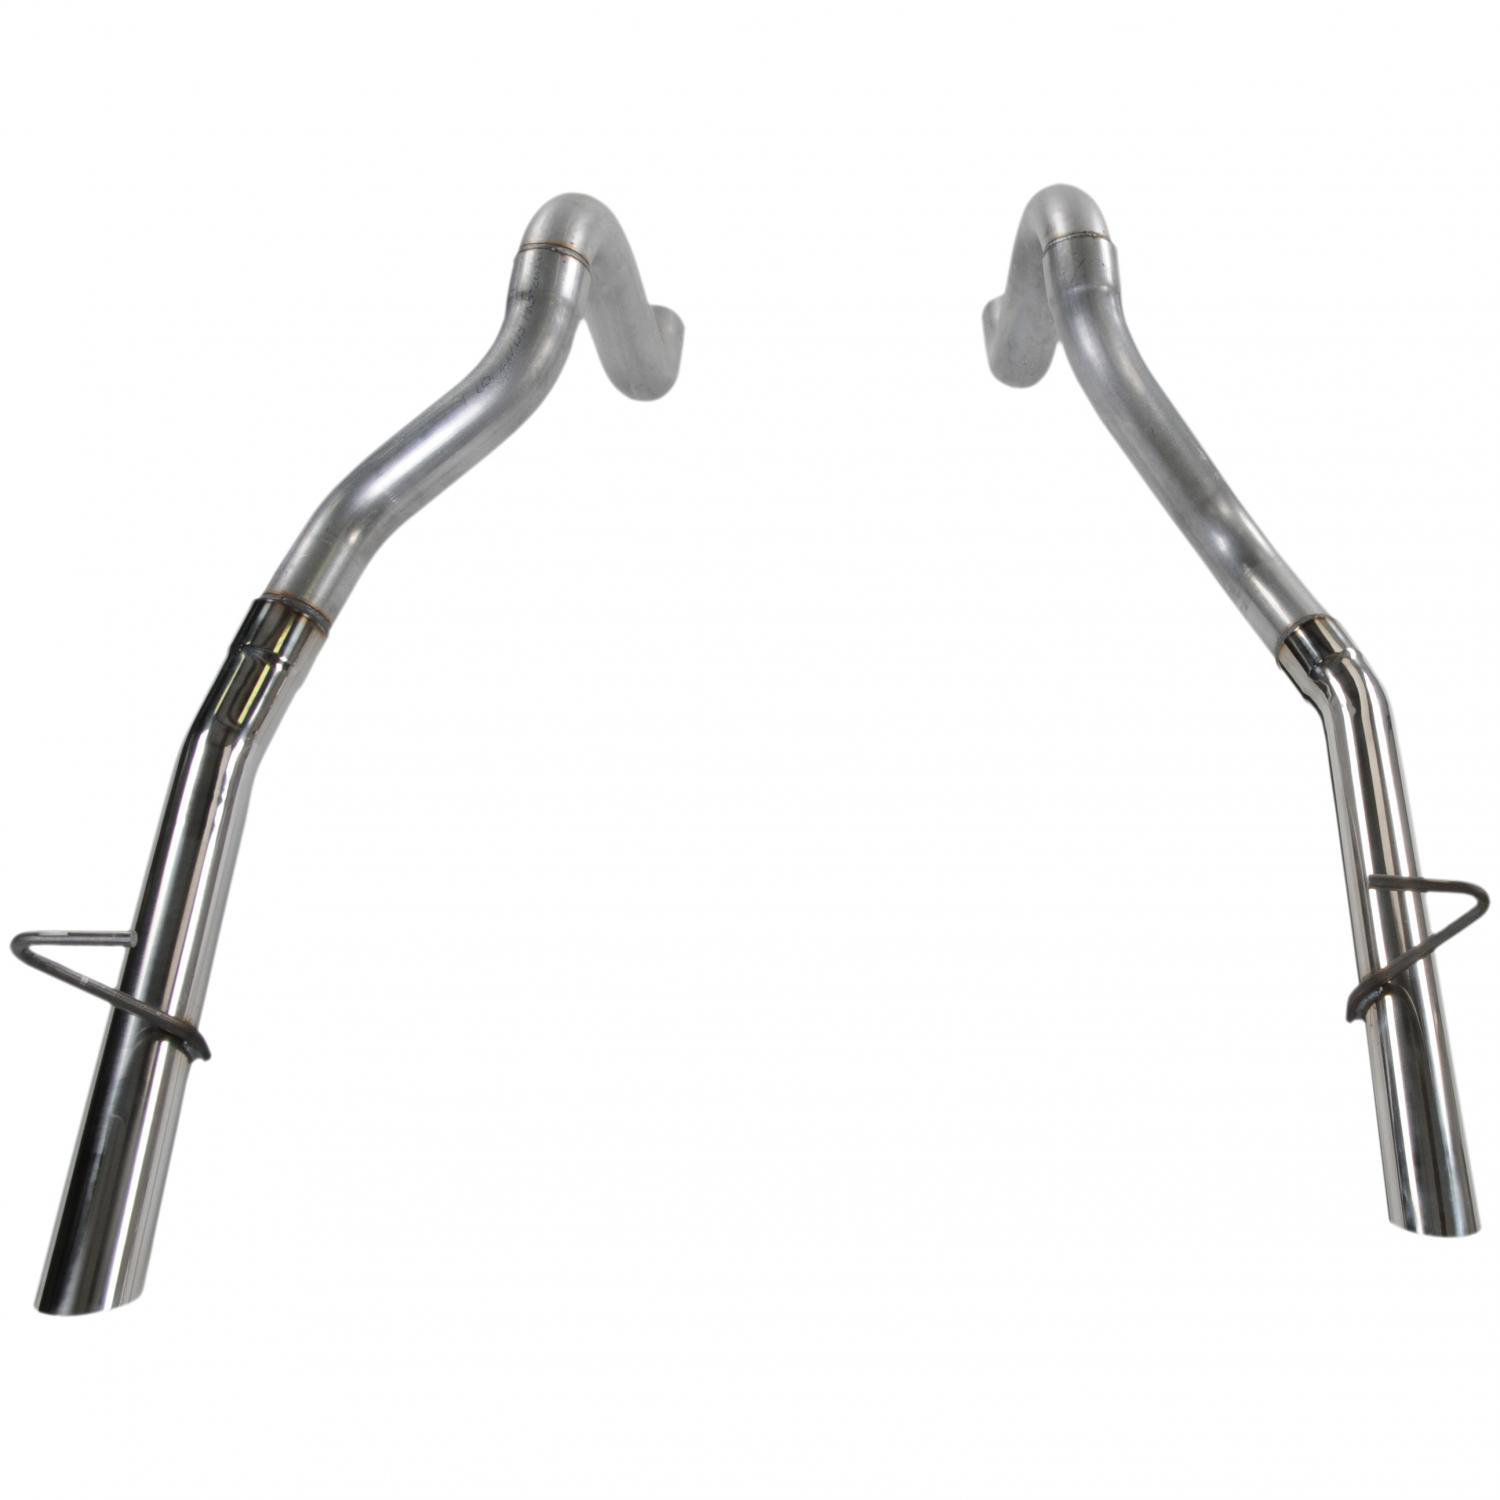 Prebent Tailpipes 2 50 in - Rear Exit, 1 Pair 409S